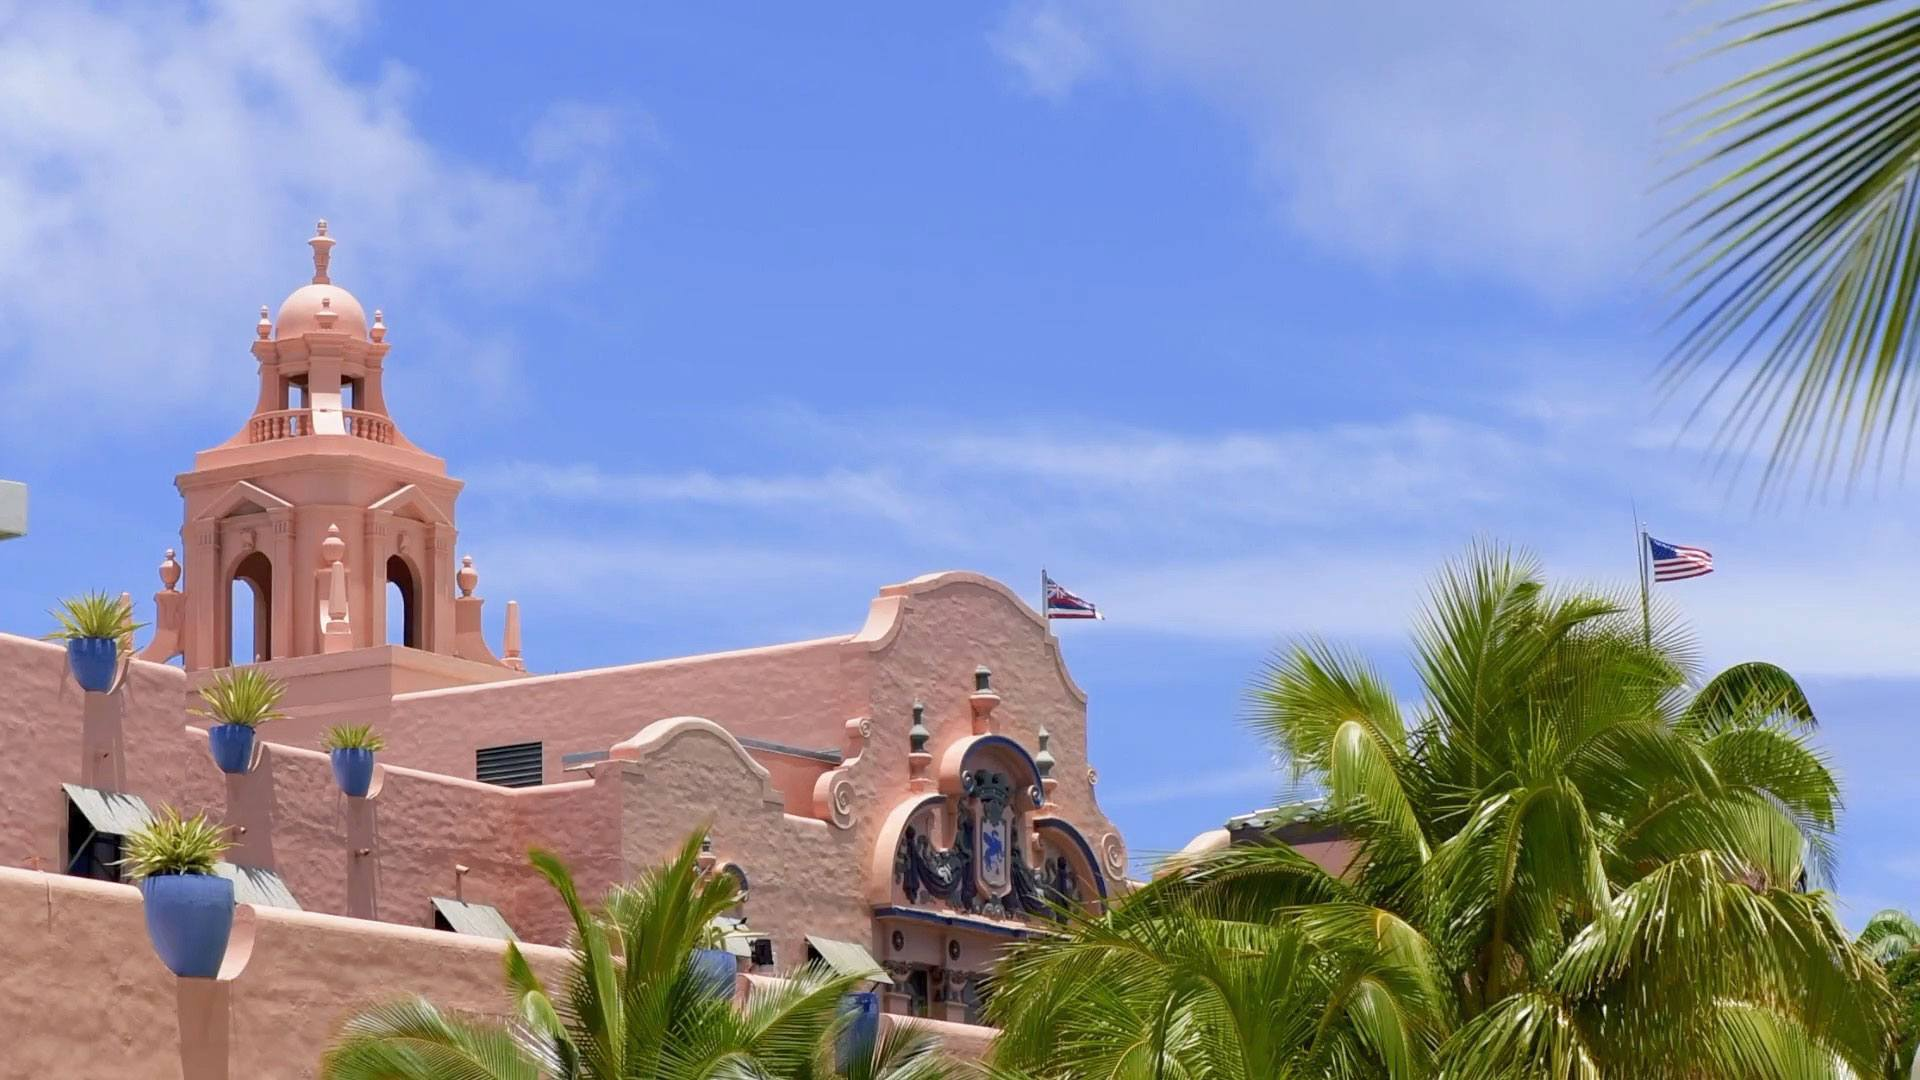 architectural photo of pink building